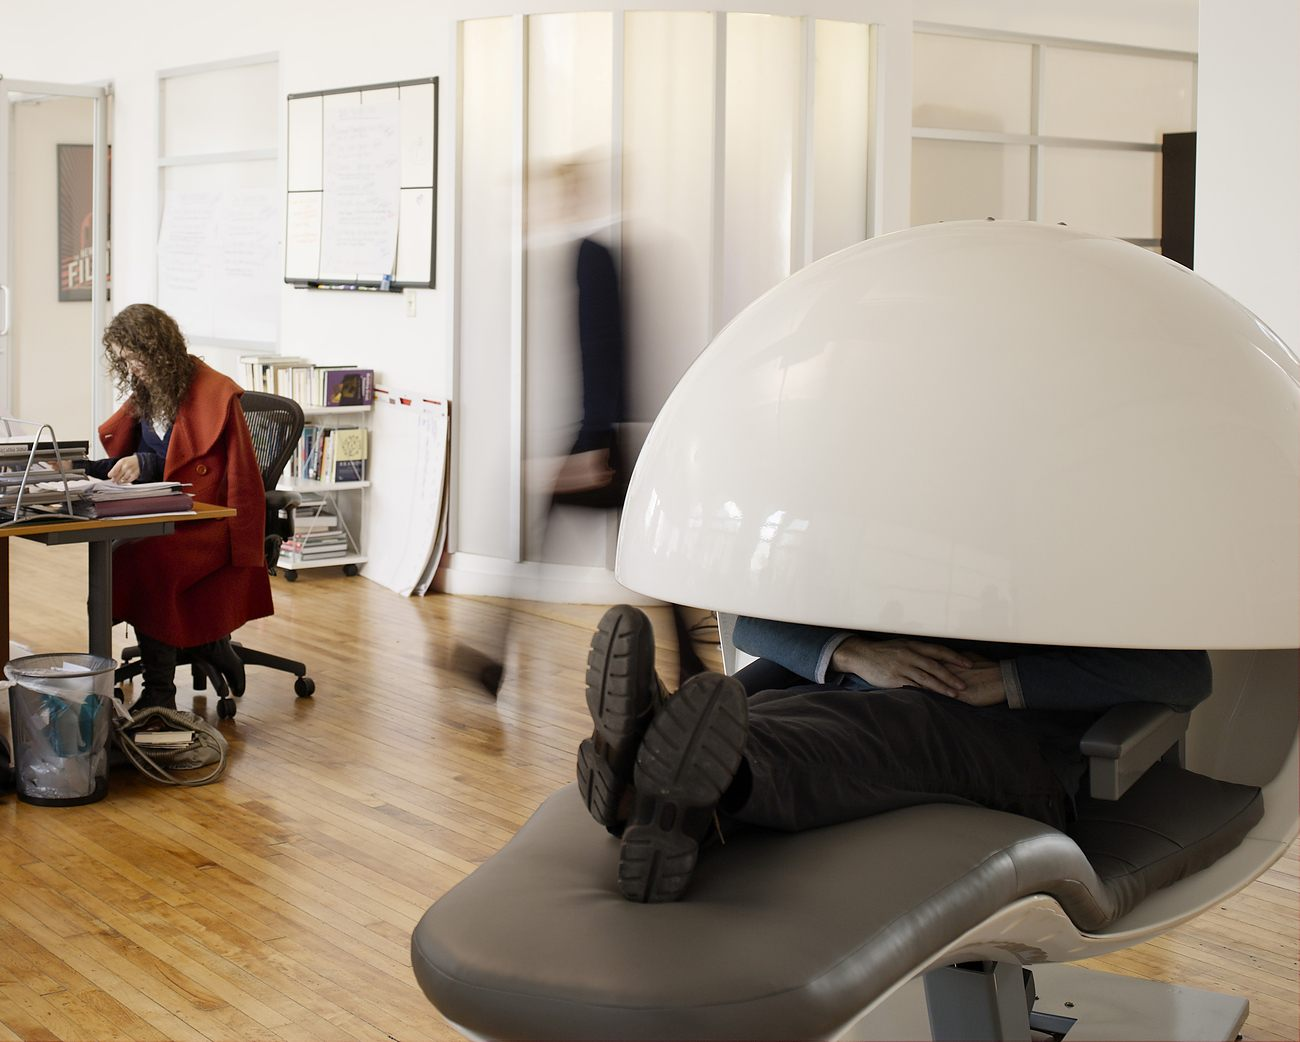 Marvelous EnergyPod Napping Chair By MetroNaps · EnergyPod Napping Chair By MetroNaps  ...